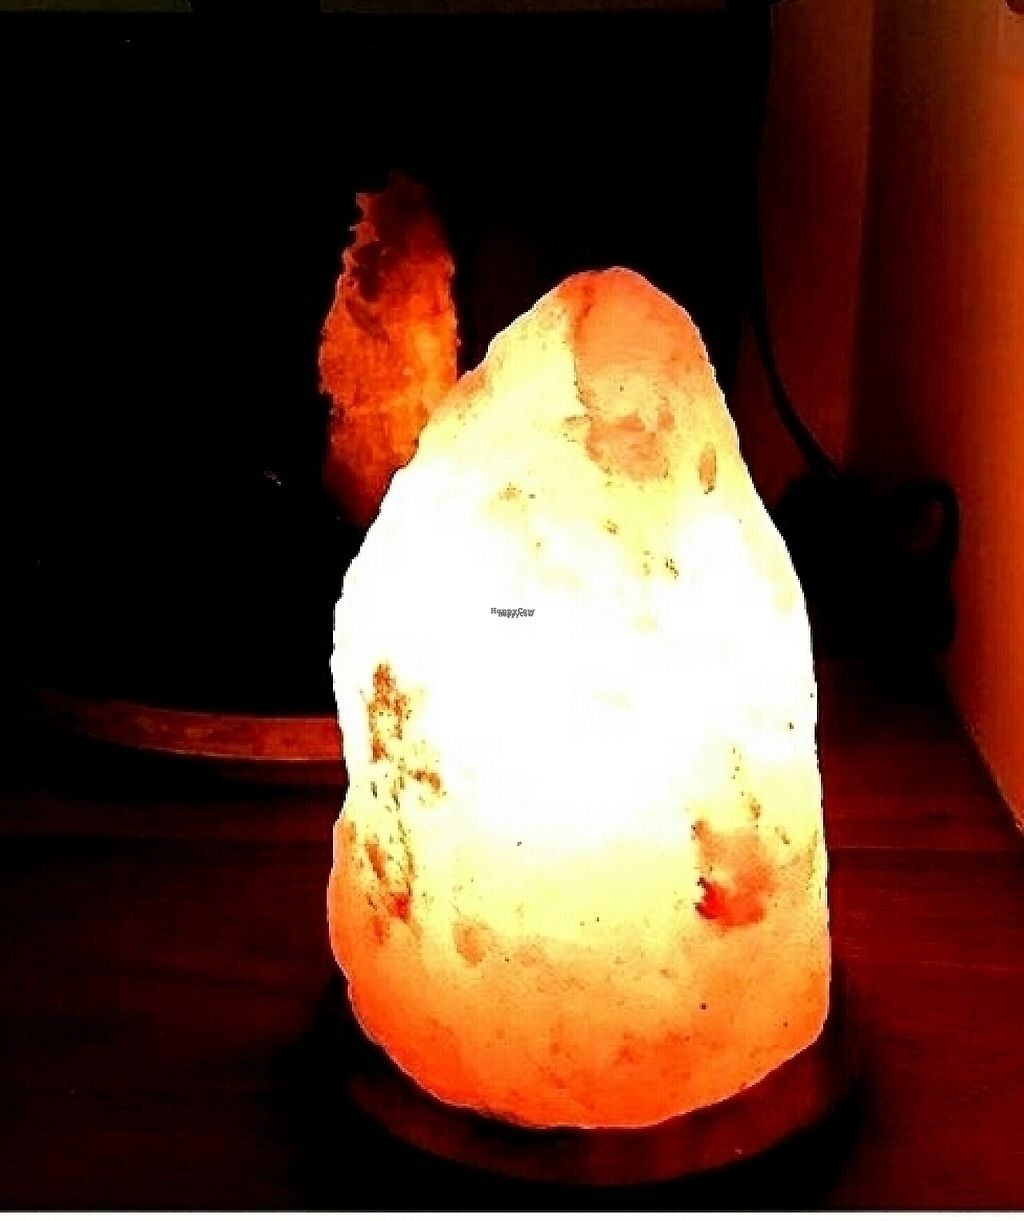 """Photo of My Pillow Health Store  by <a href=""""/members/profile/antoniotiu"""">antoniotiu</a> <br/>himalayan salt lamp <br/> March 10, 2017  - <a href='/contact/abuse/image/60359/234821'>Report</a>"""